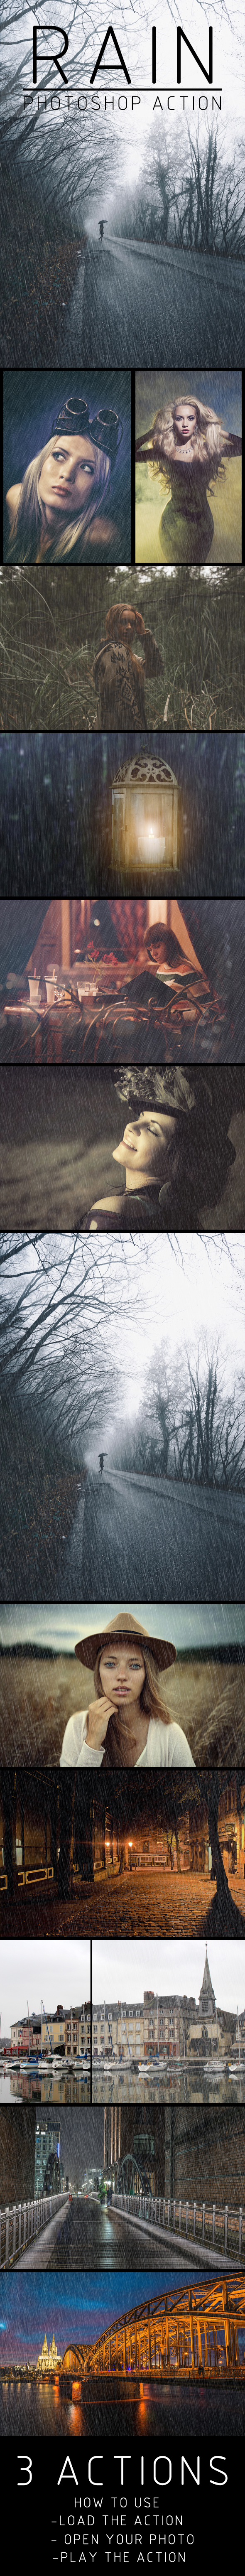 Rainy Day Photoshop Actions - Photo Effects Actions